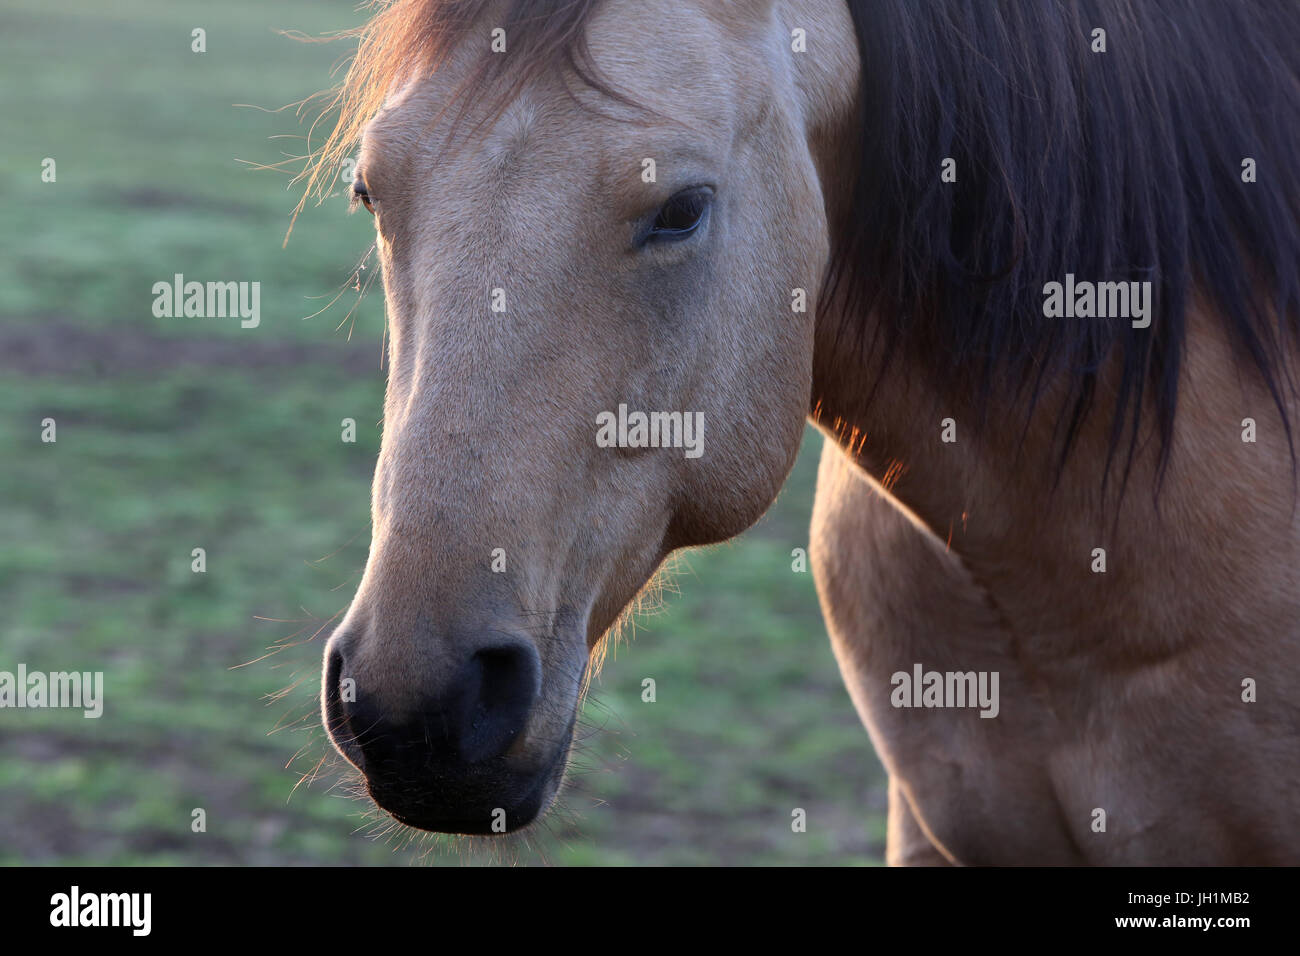 Horse in a field. France. - Stock Image